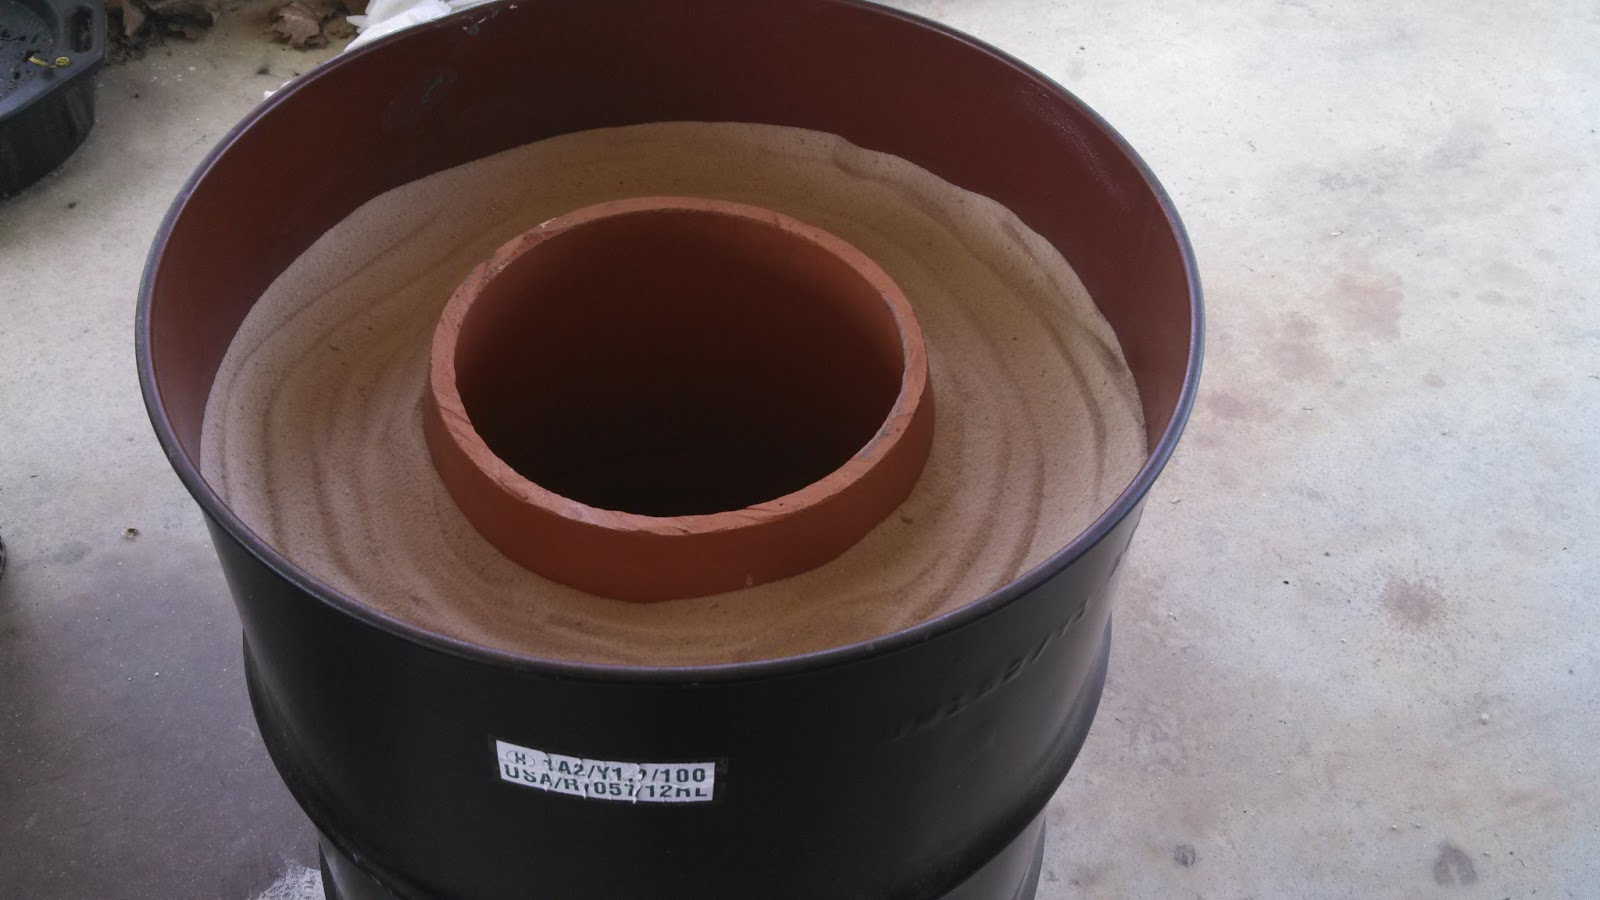 full contact food build your own tandoor oven